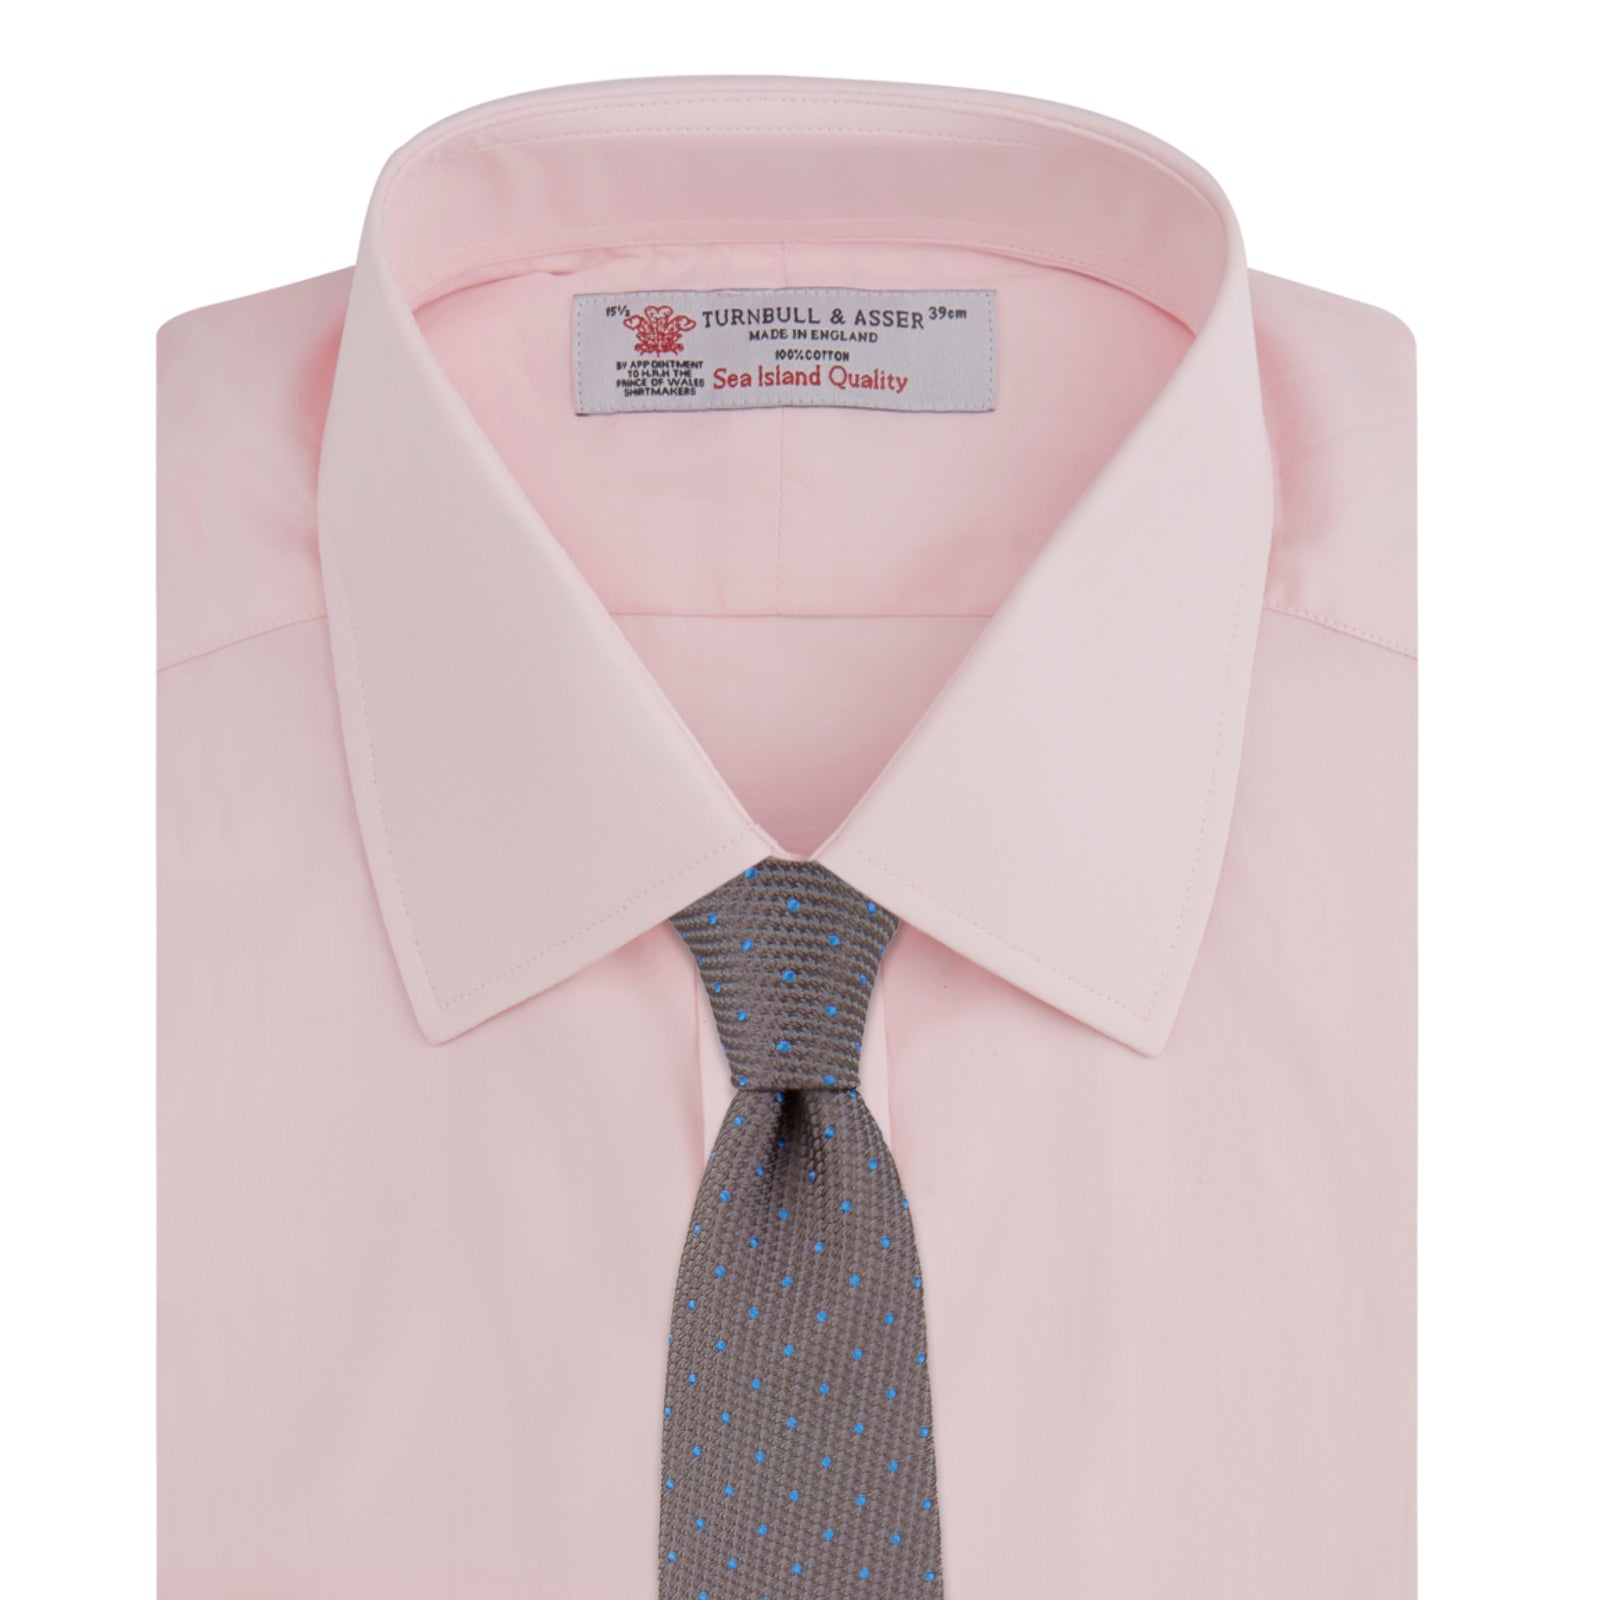 Pink Sea Island Quality Cotton Shirt with T&A Collar and 3-Button Cuffs